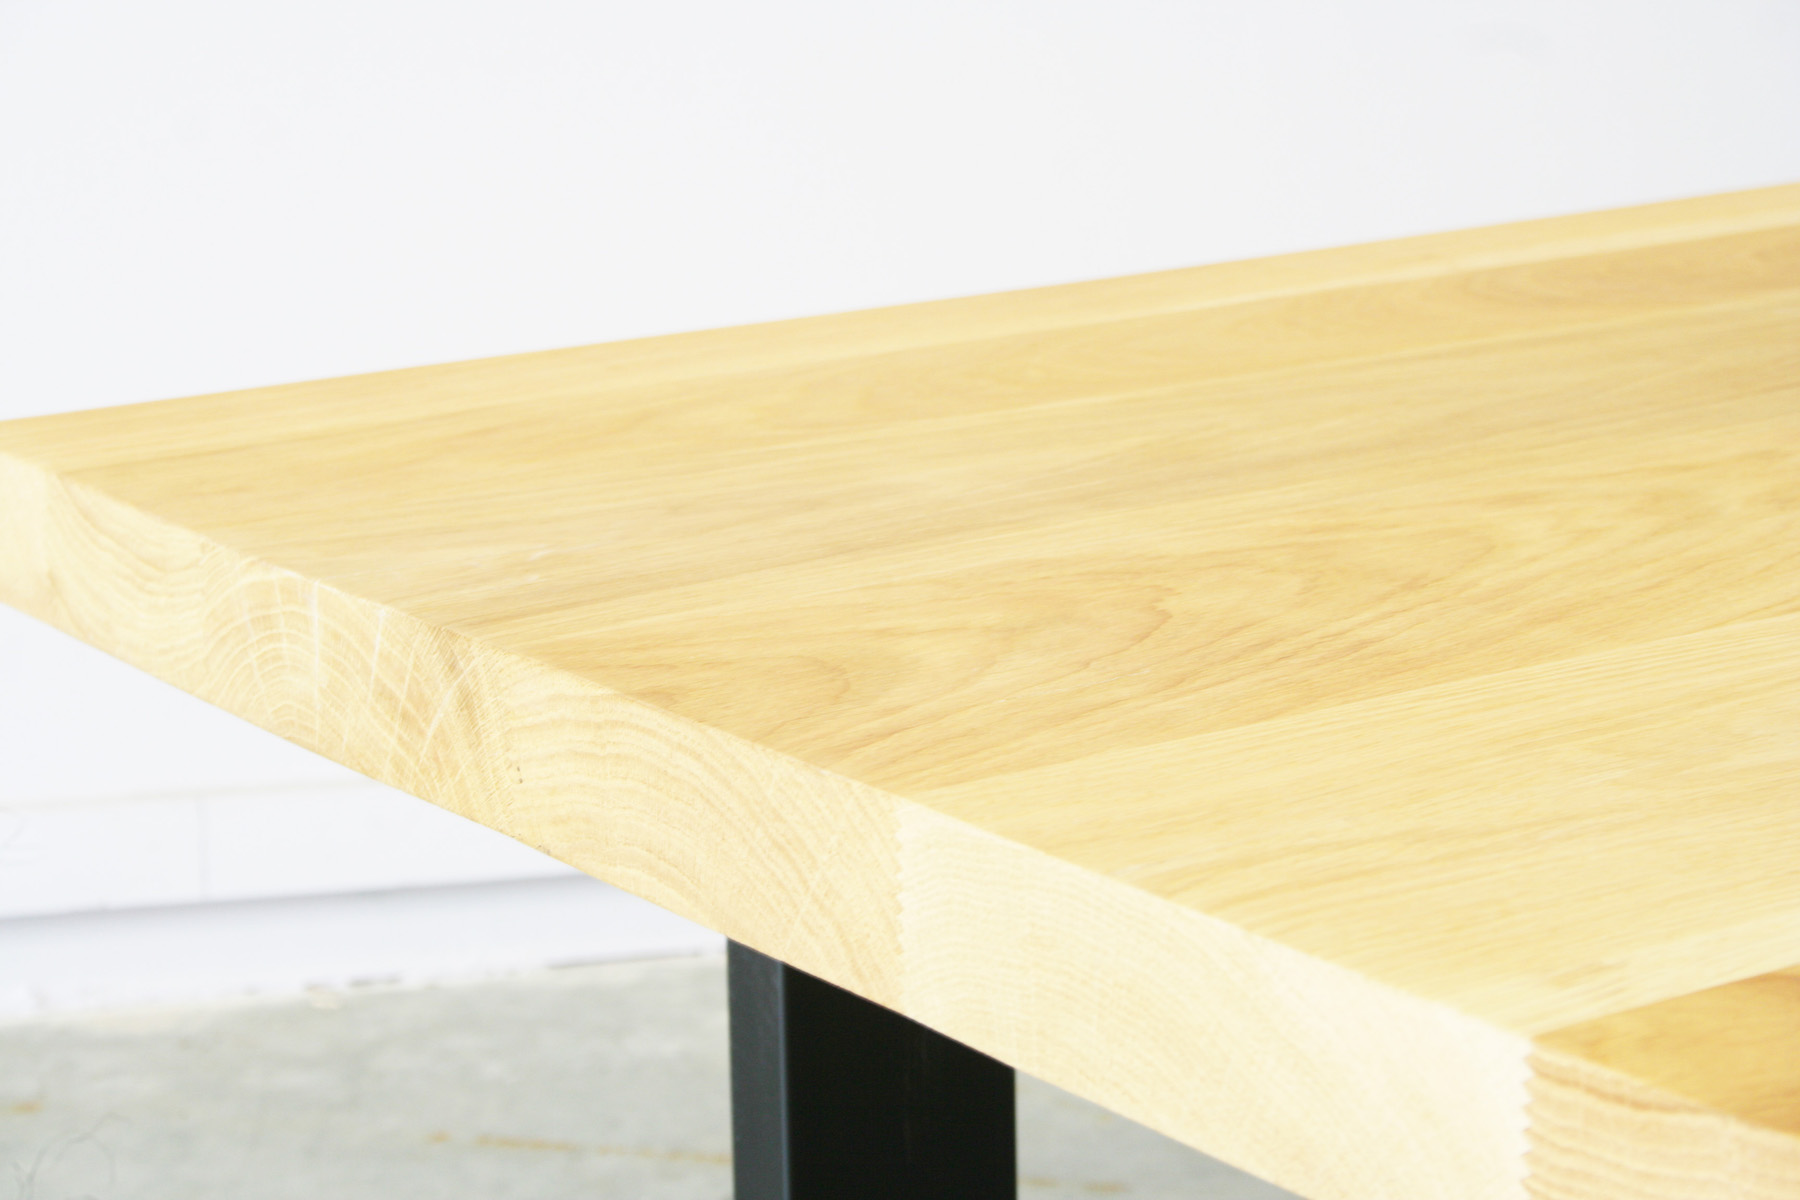 detalle_madera_roble